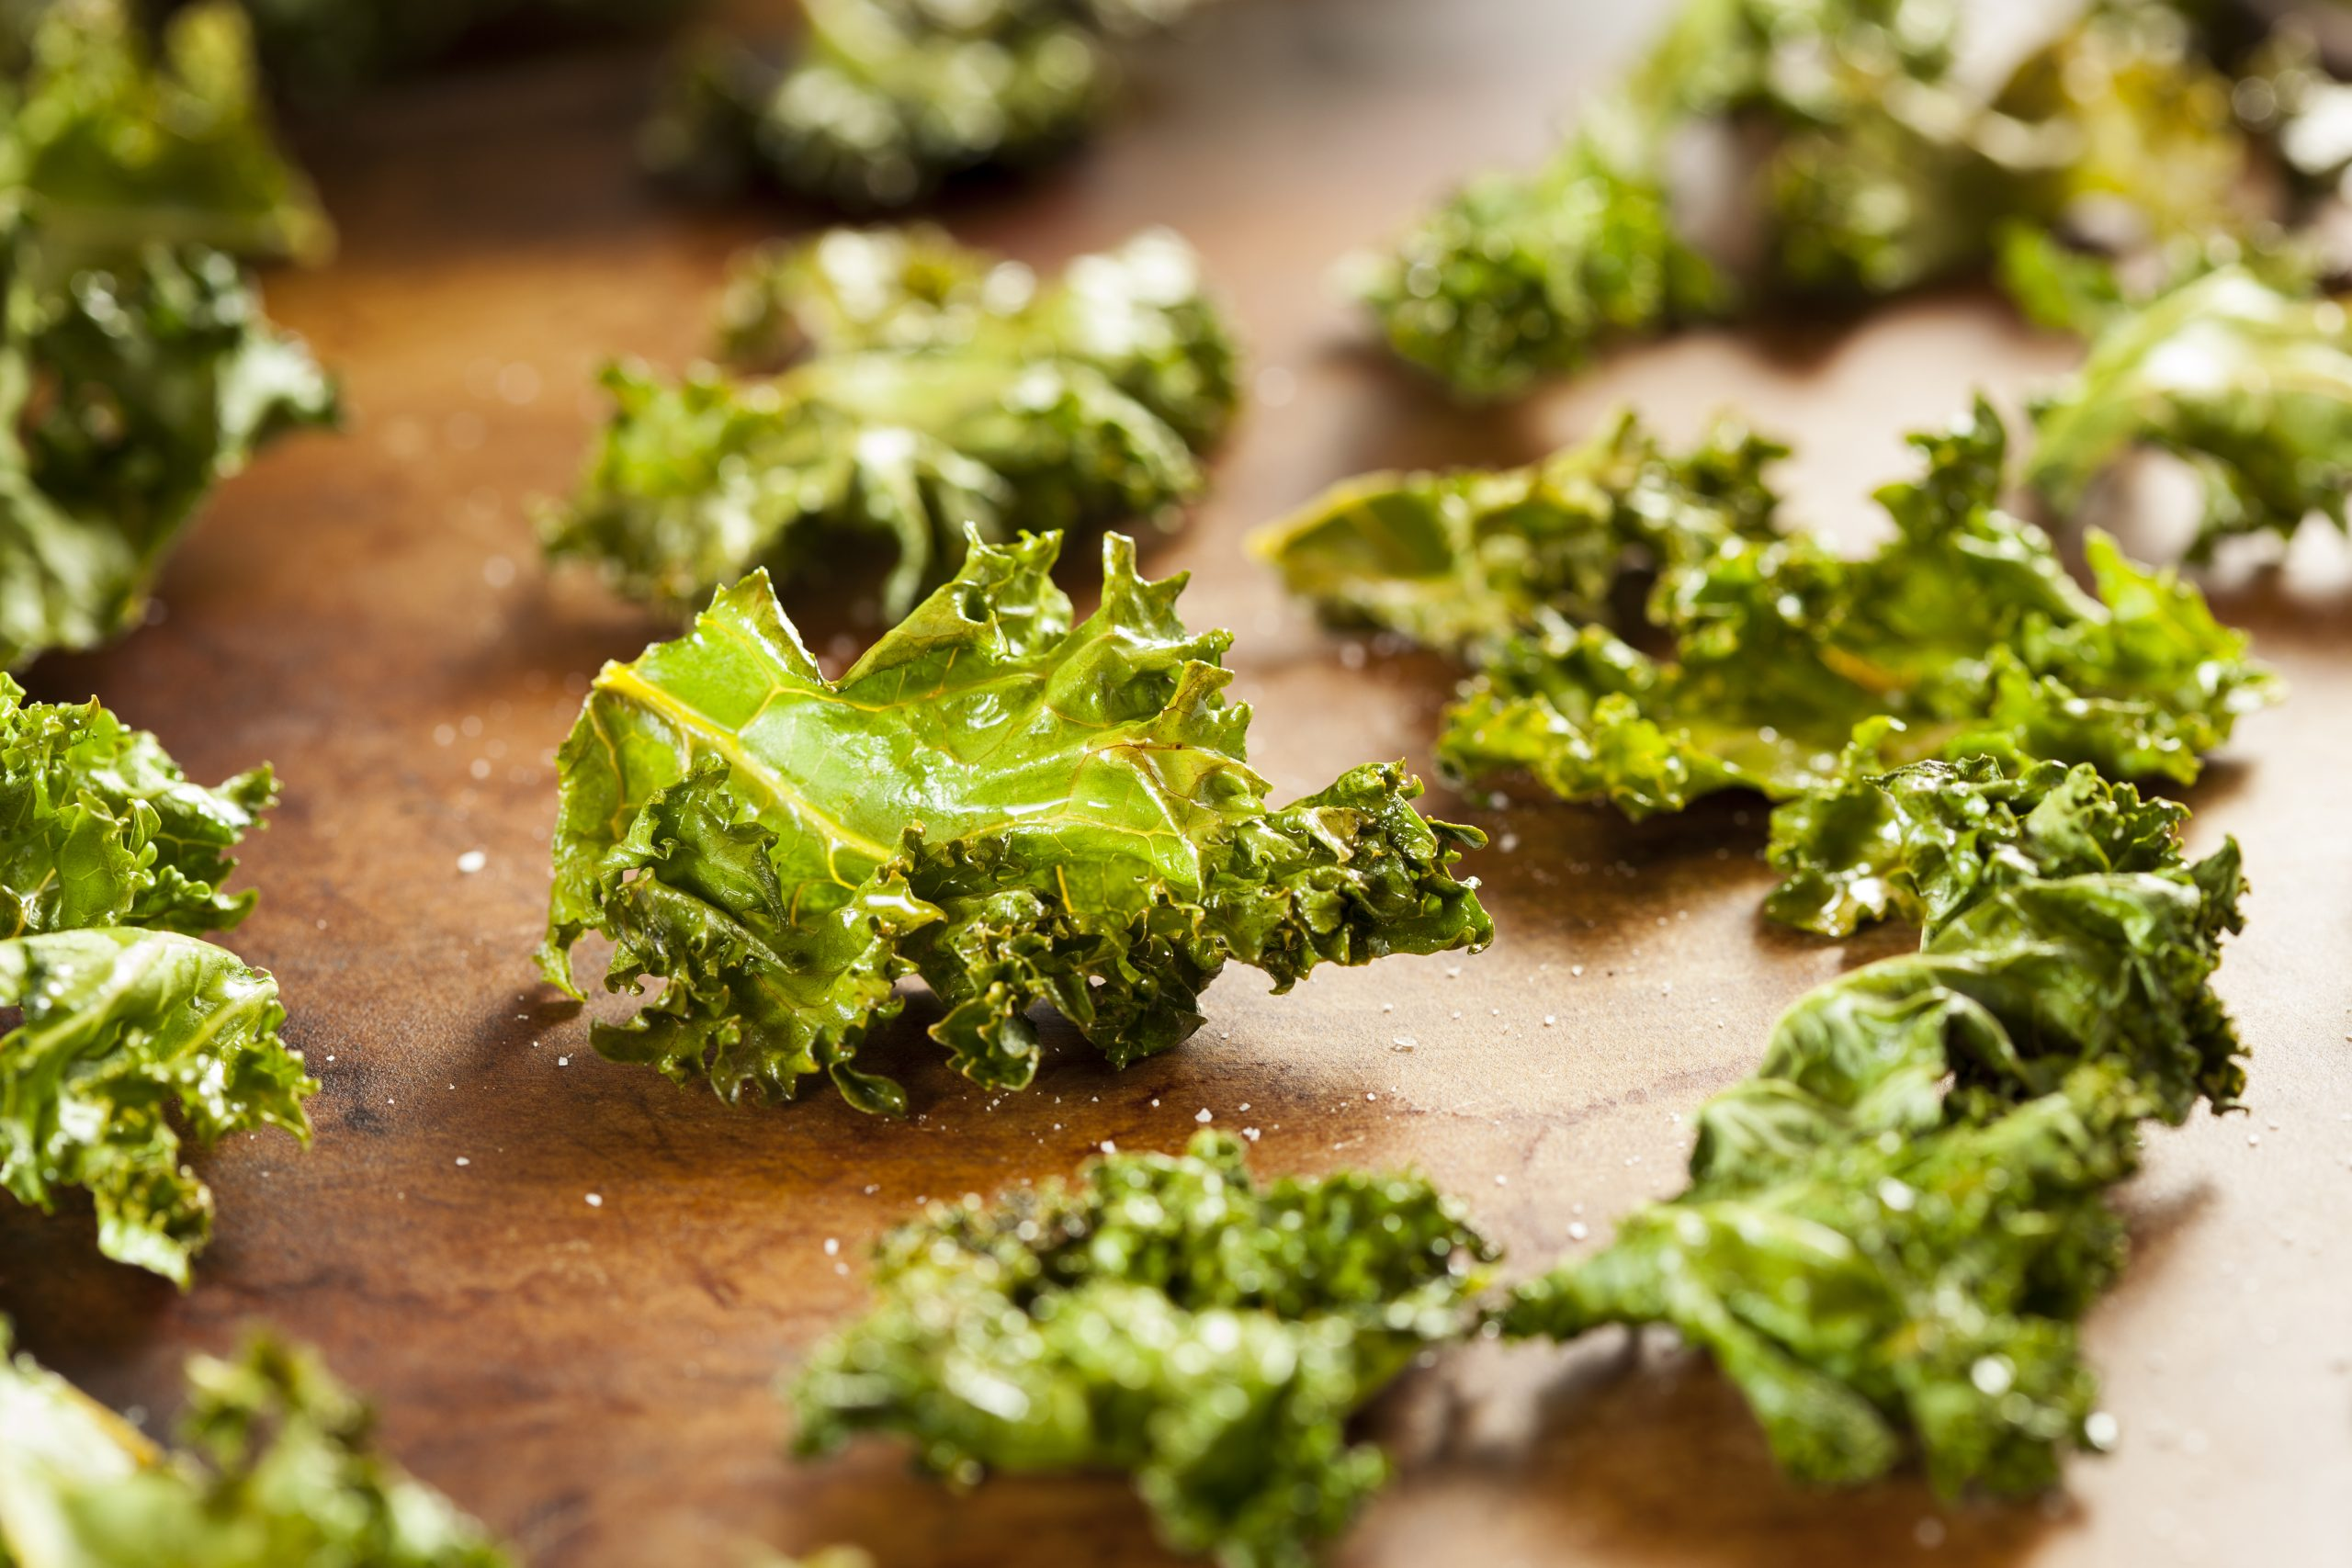 baked kale on wooden table